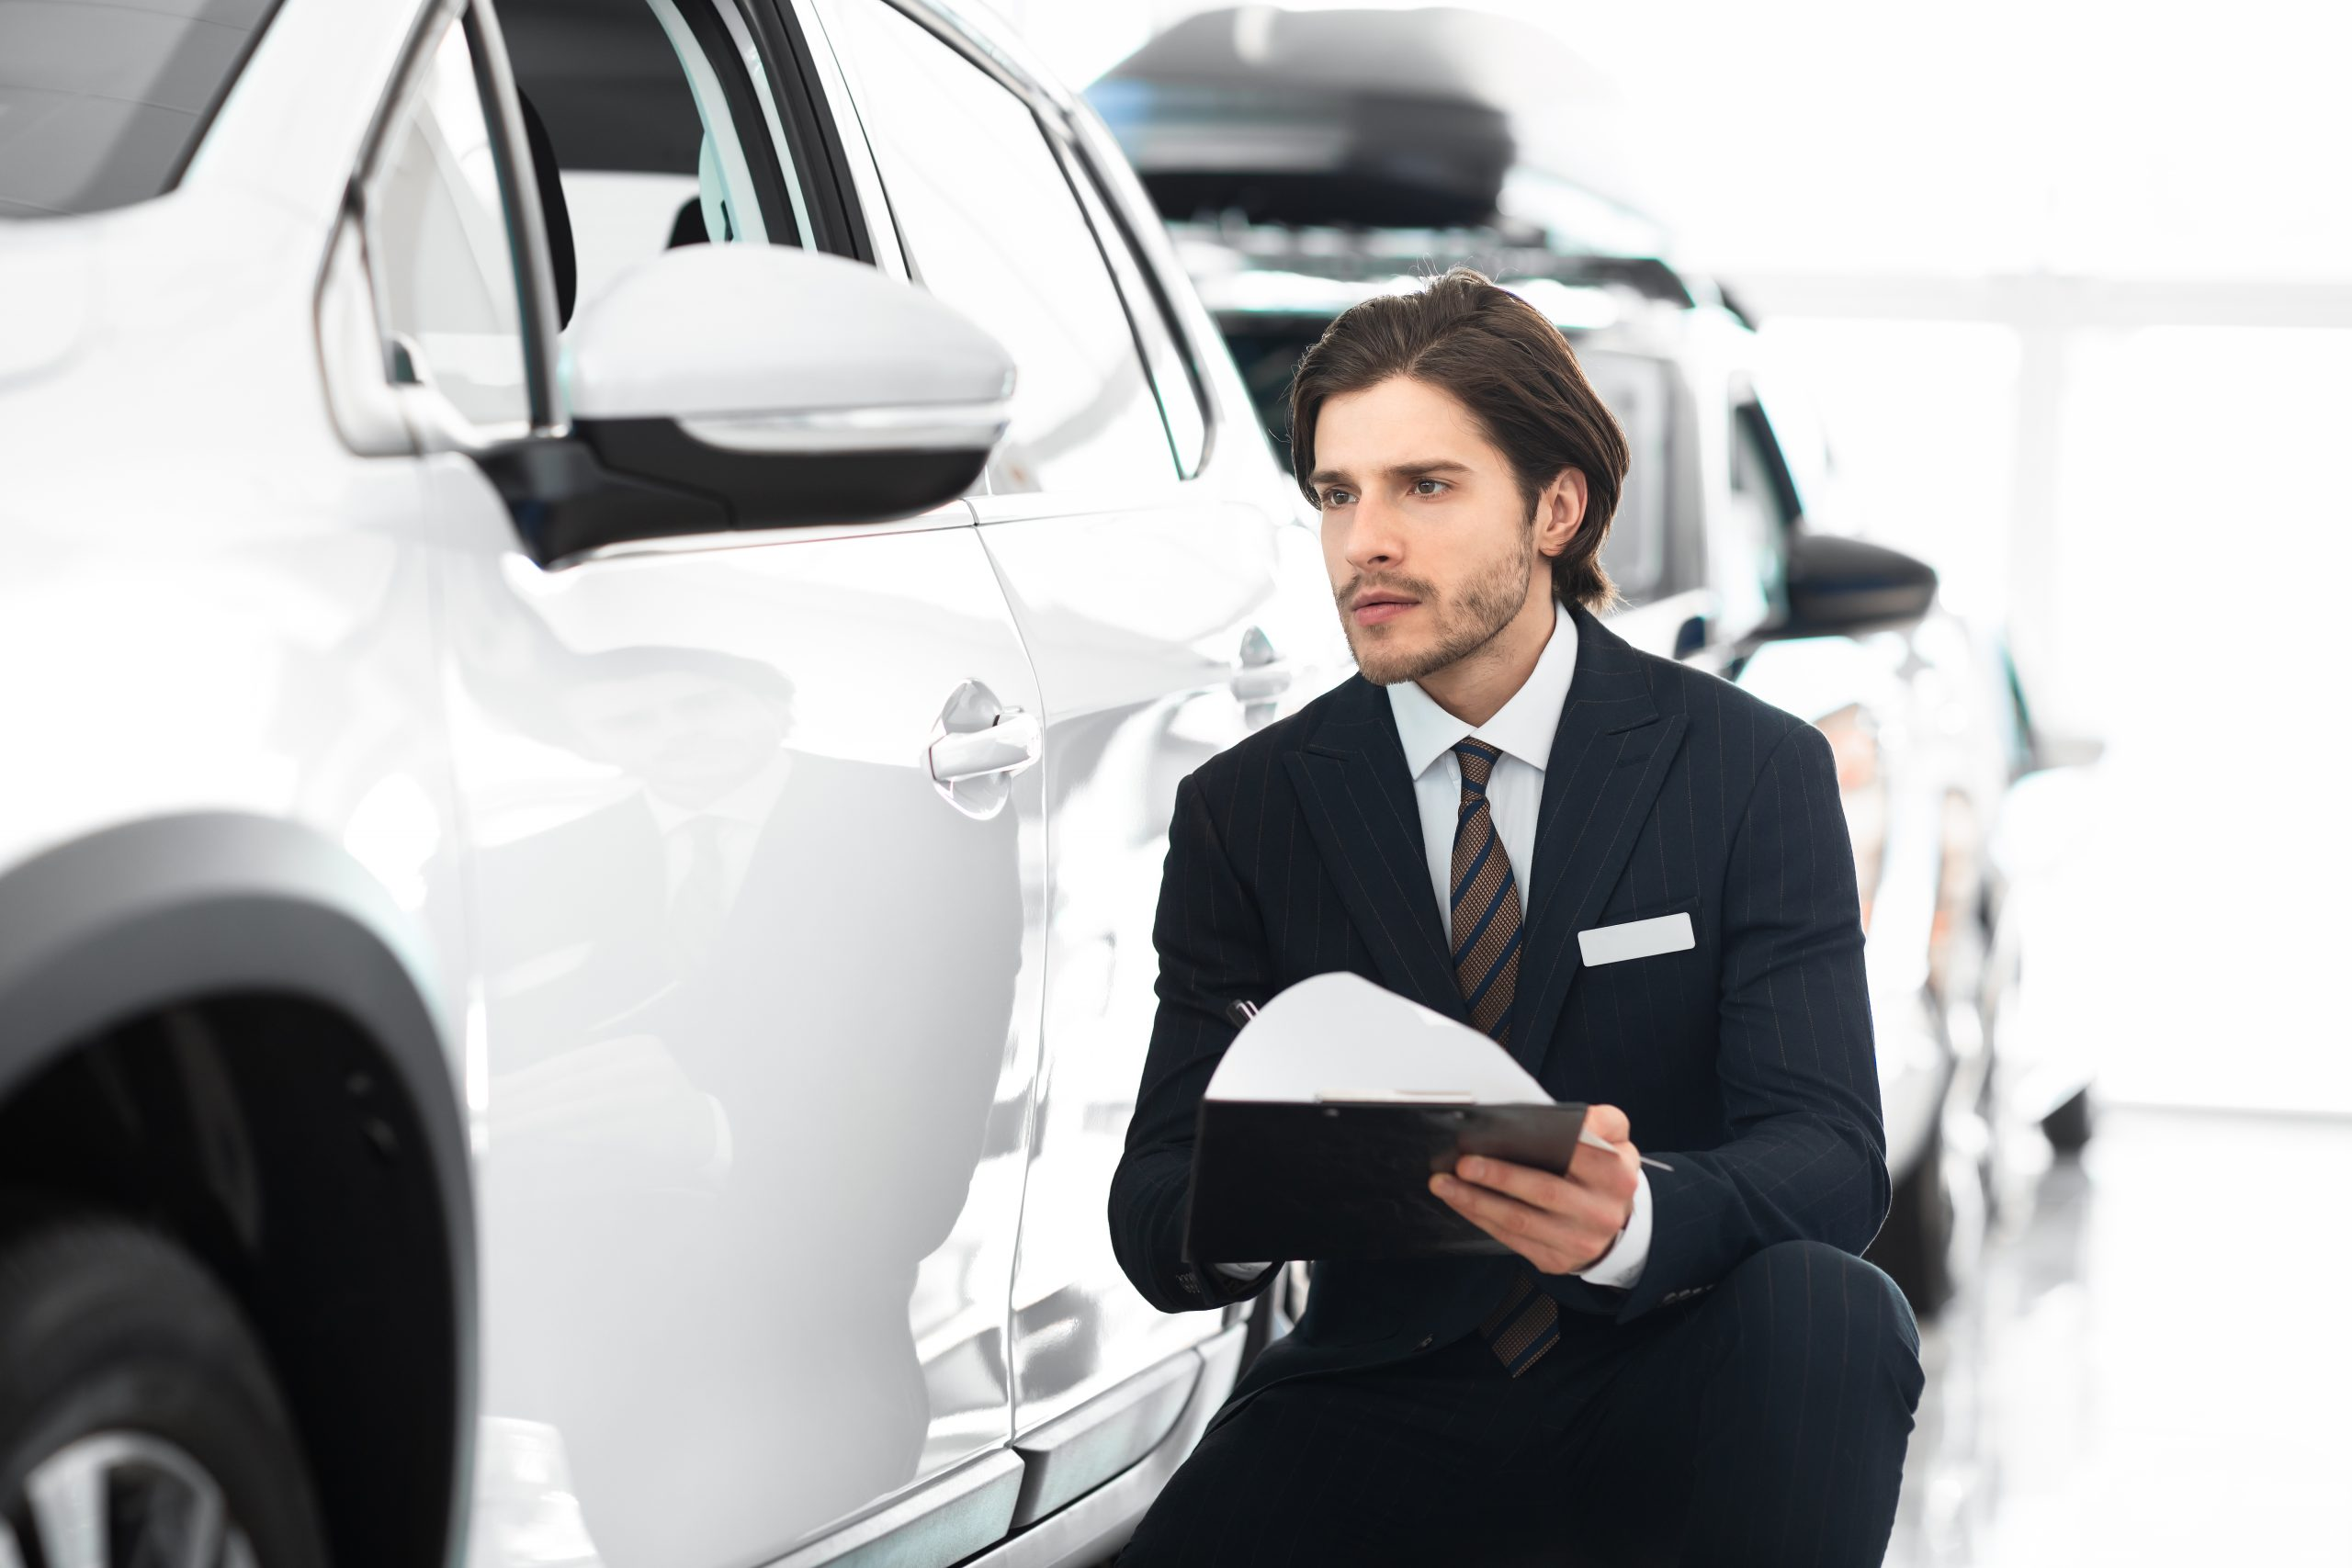 How To Get The Most Out Of Your Car Insurance